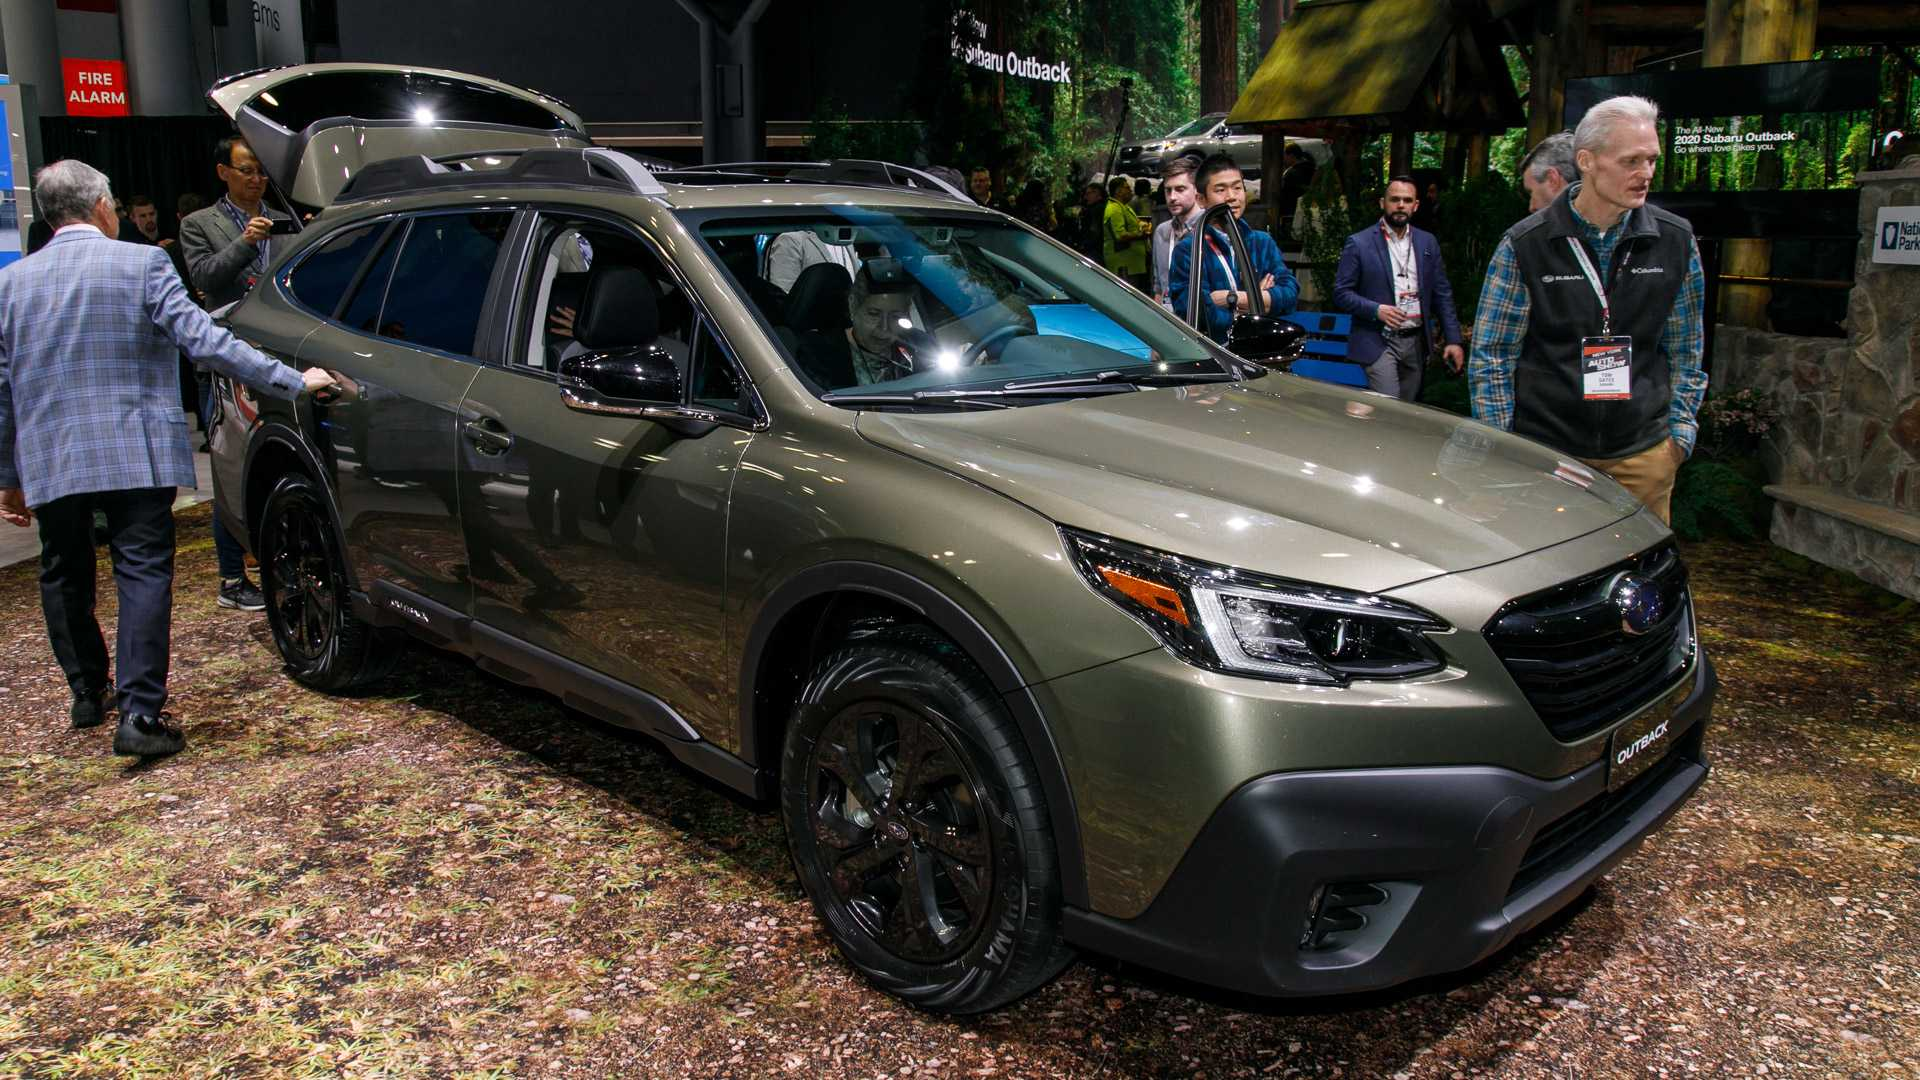 30 Great 2020 Subaru Outback Ground Clearance Pictures for 2020 Subaru Outback Ground Clearance